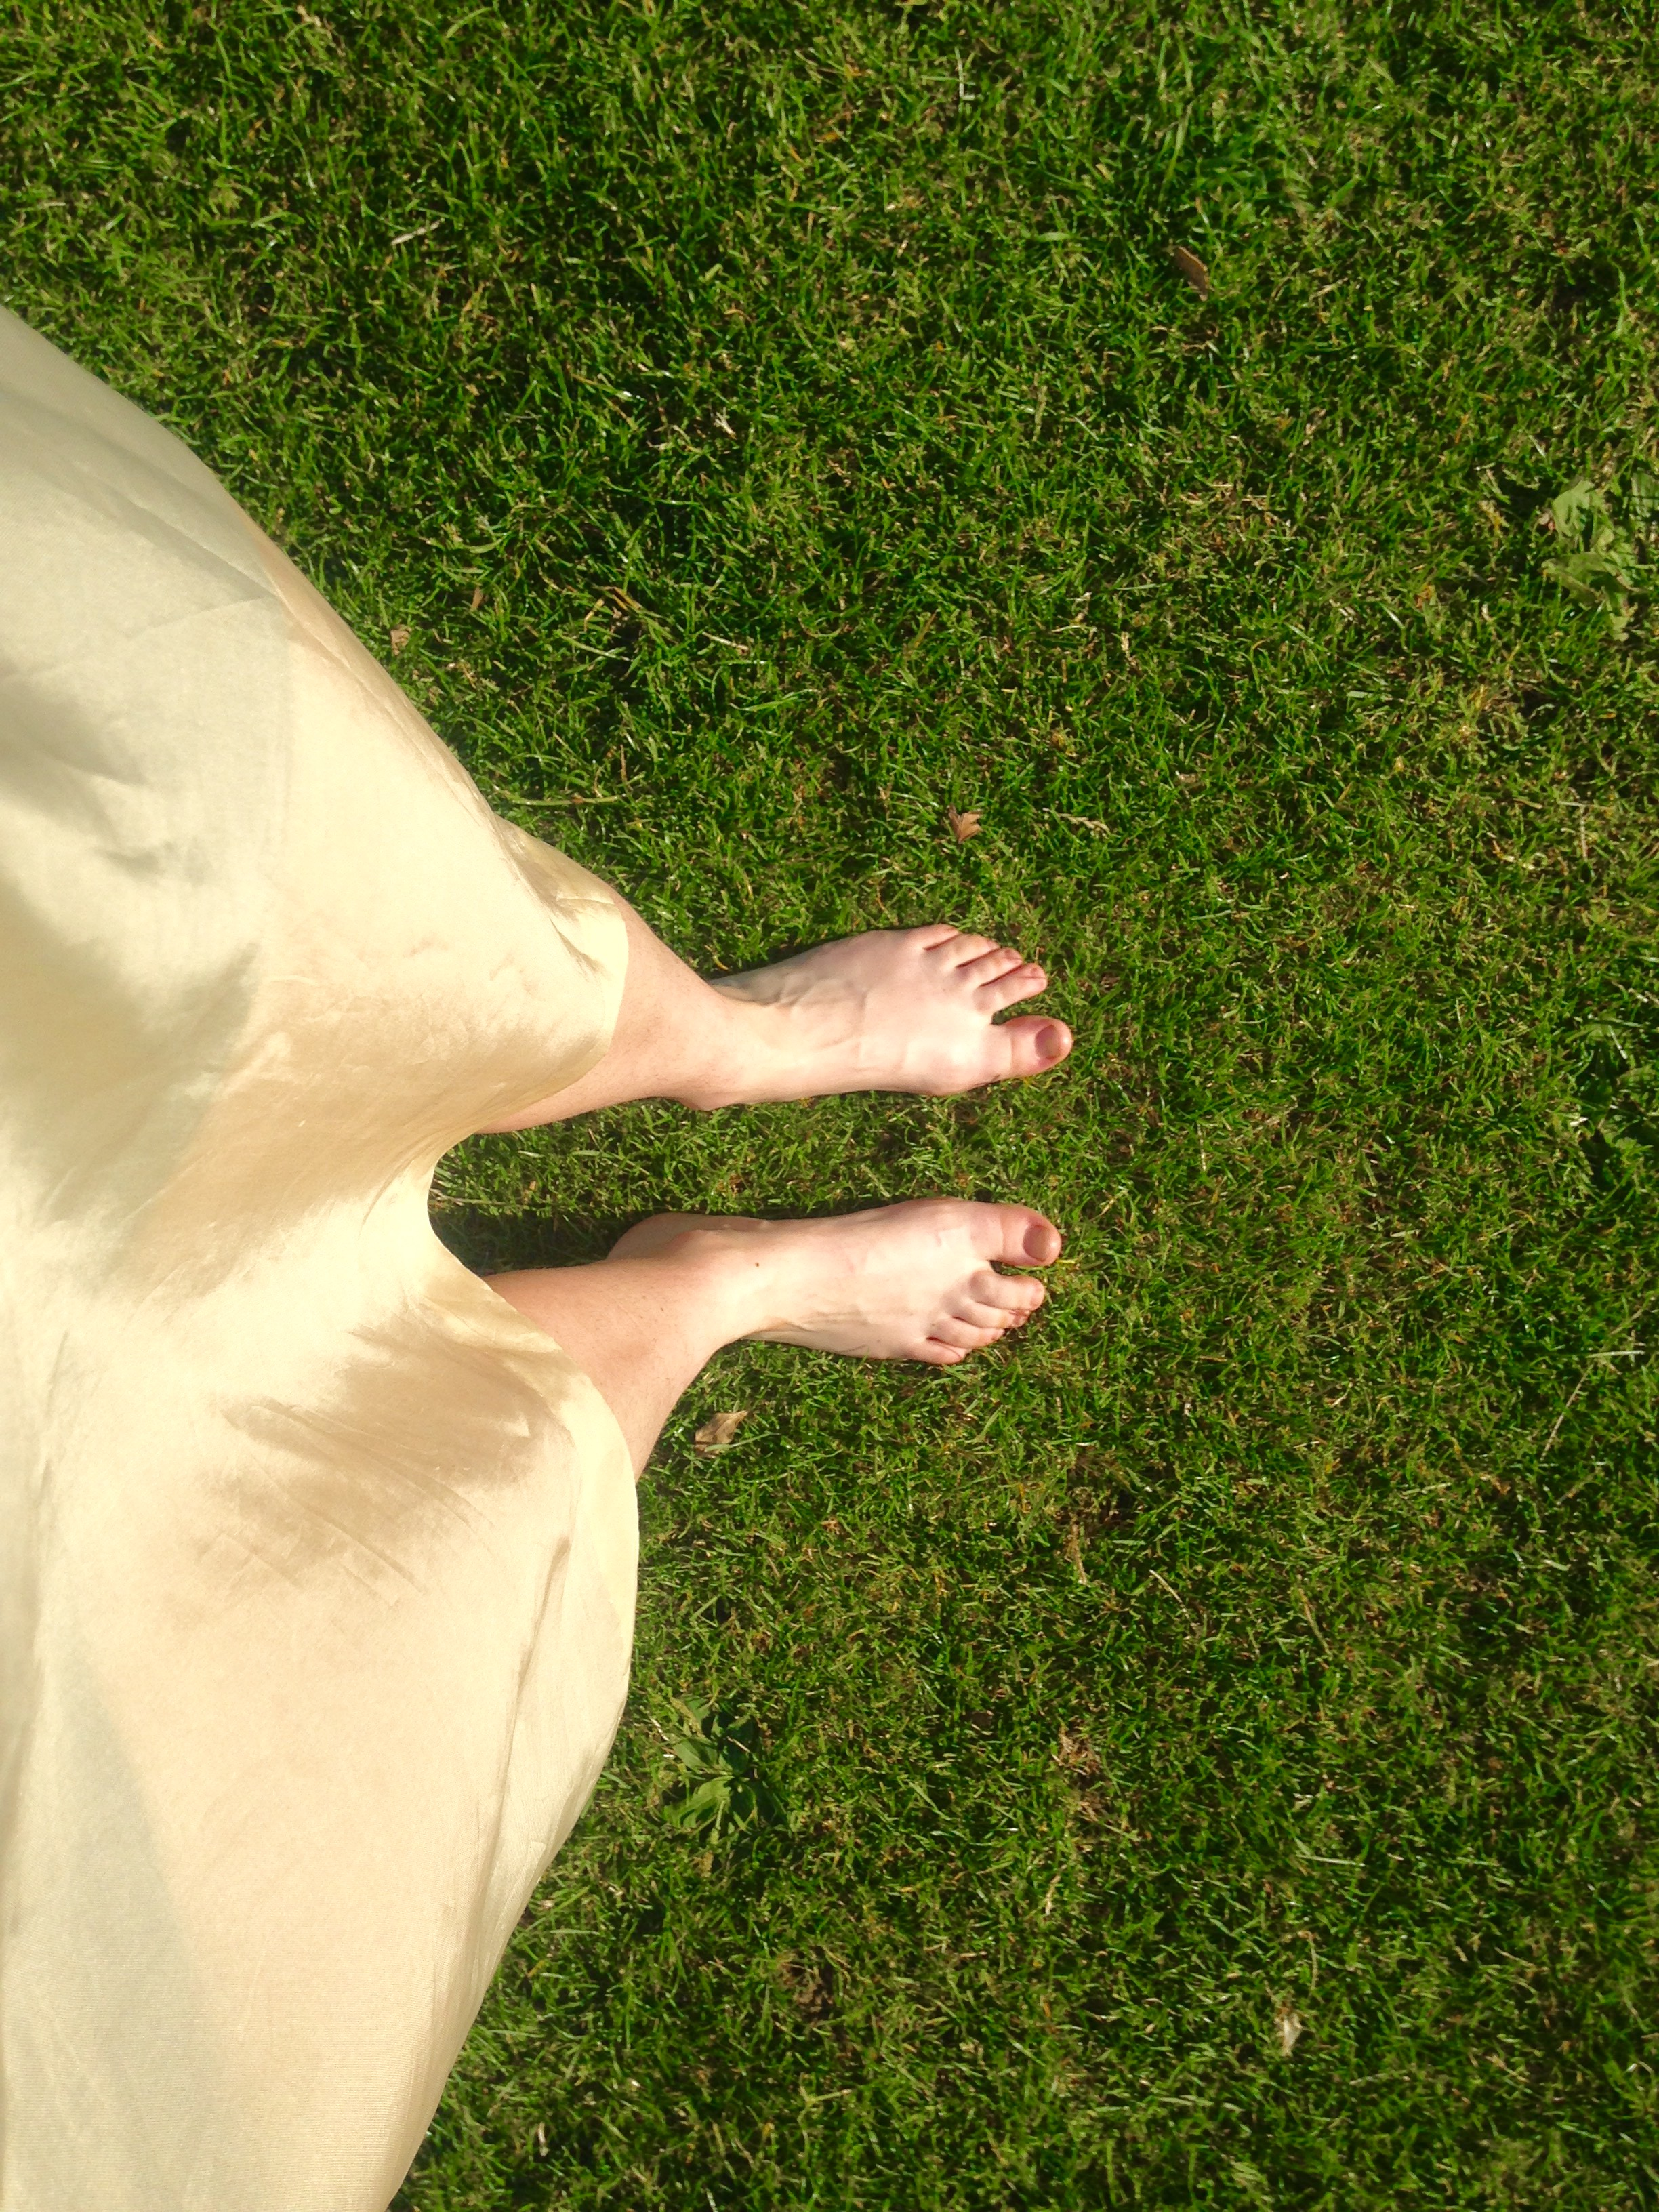 Read about the health benefits of grounding here - http://www.mindbodygreen.com/0-9099/the-surprising-health-benefits-of-going-barefoot.html